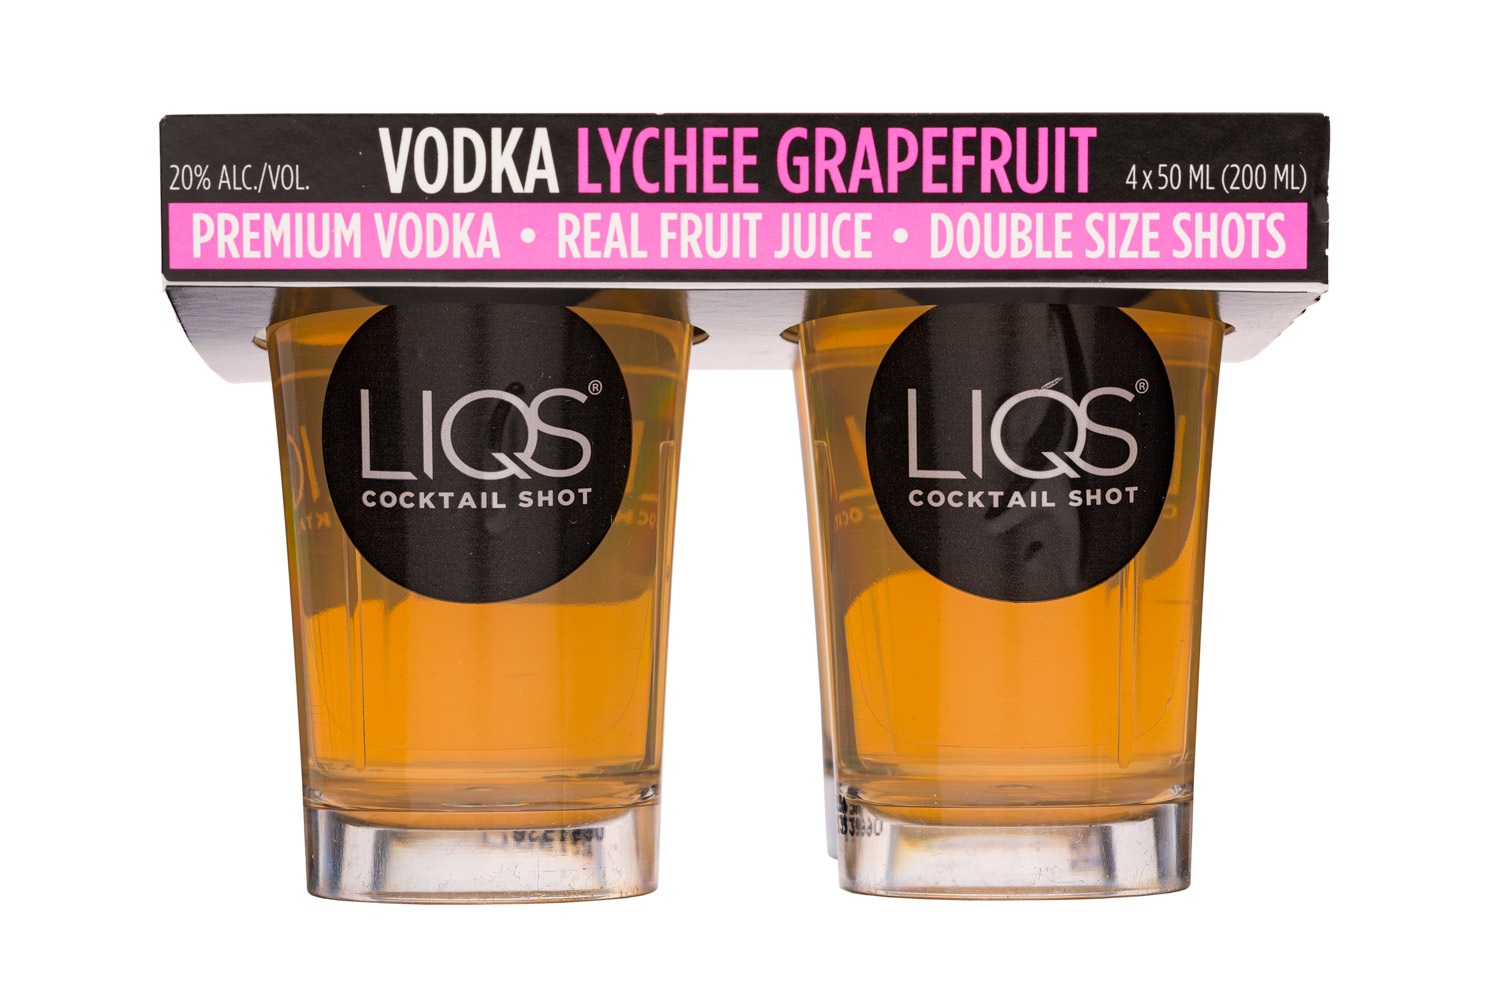 LIQS Cocktail Shot: LIQS-200ml-Shots-VodkaLycheeGrapefruit